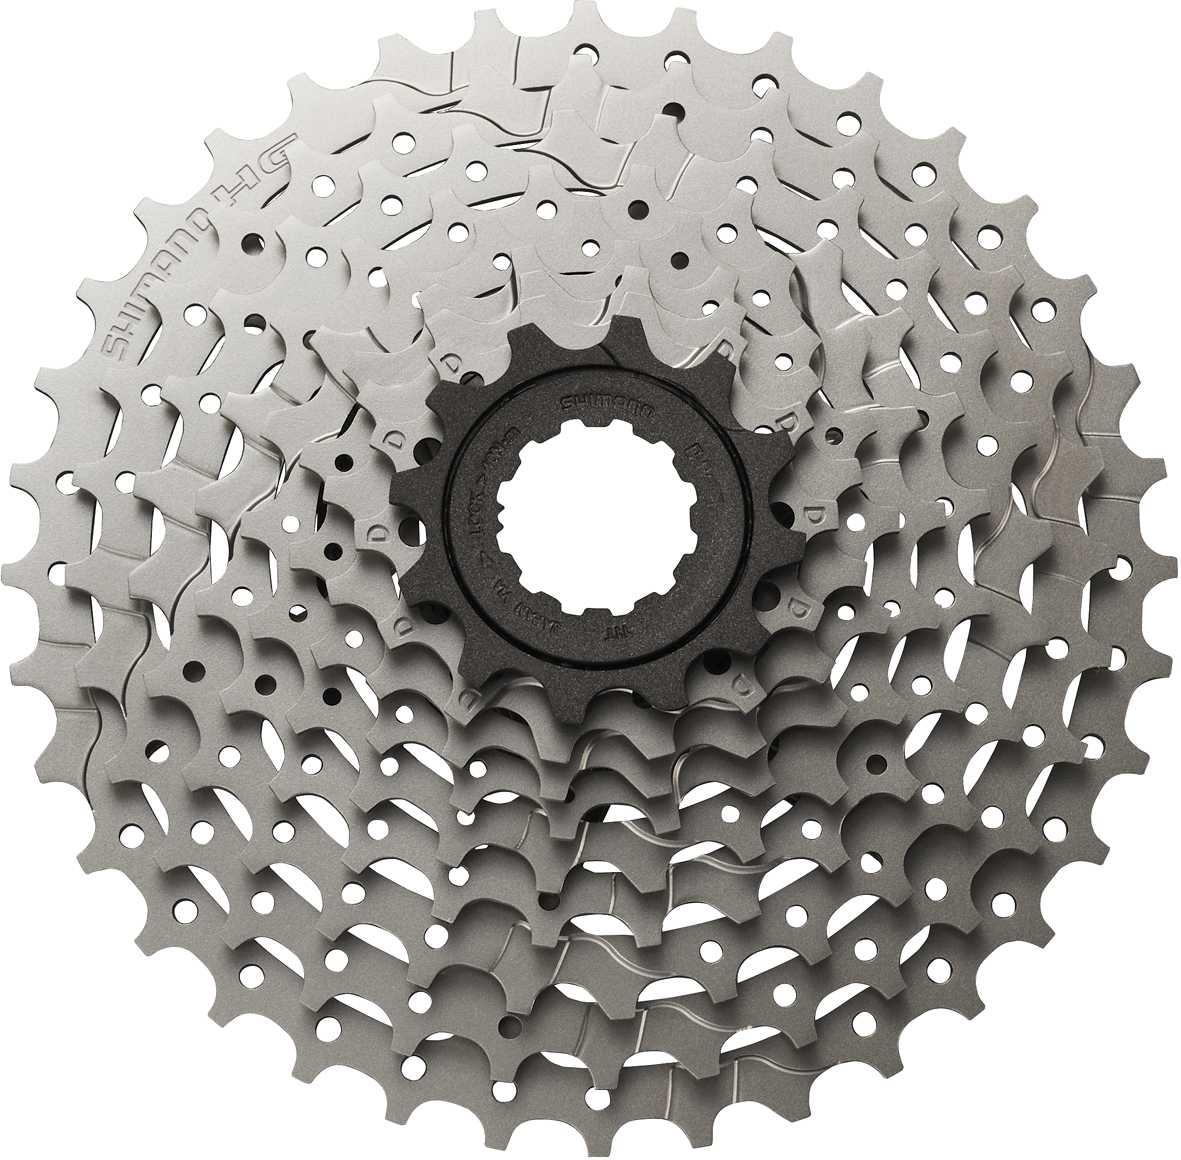 Shimano Acera HG300 9 Speed 11-32 Tooth Cassette